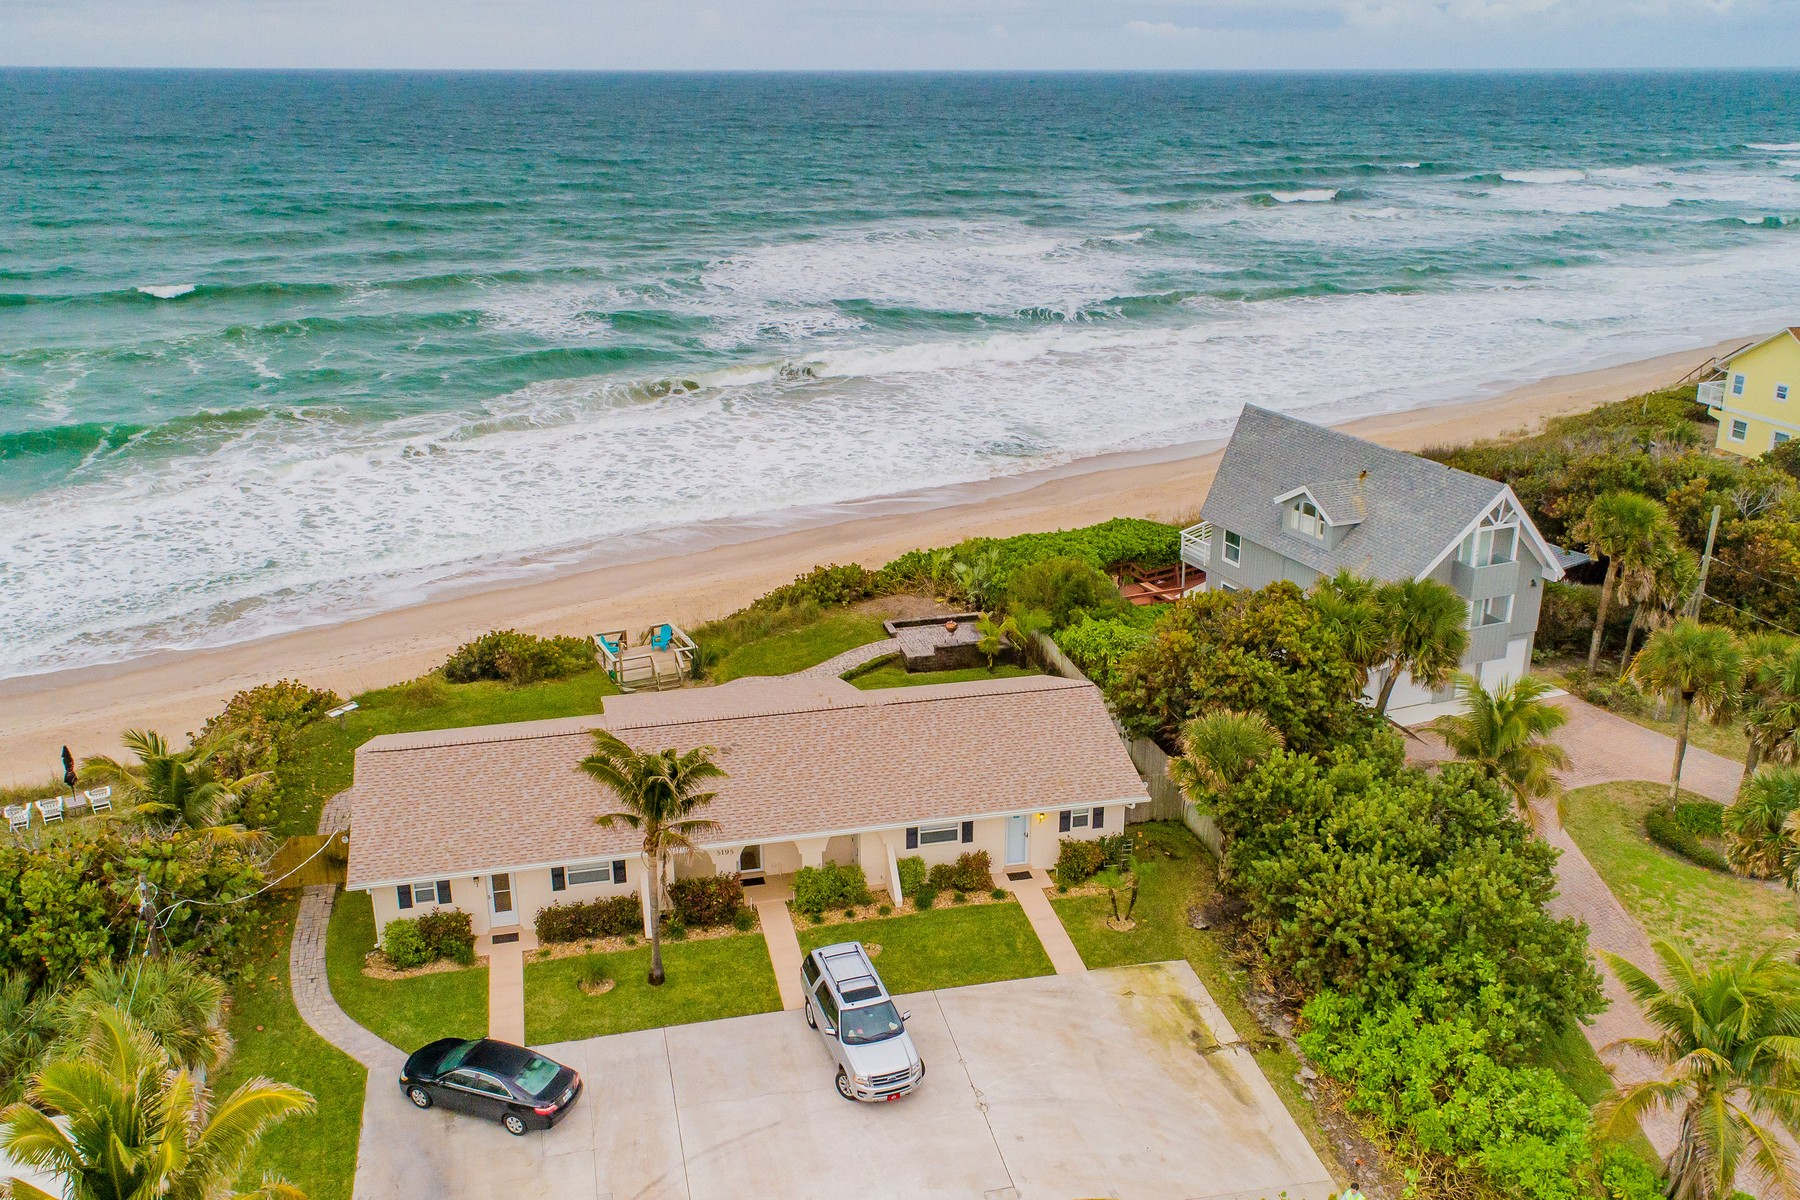 Property for Sale at Serenity Oceanfront Beach Resort 5195 S Highway A1A Melbourne Beach, Florida 32951 United States